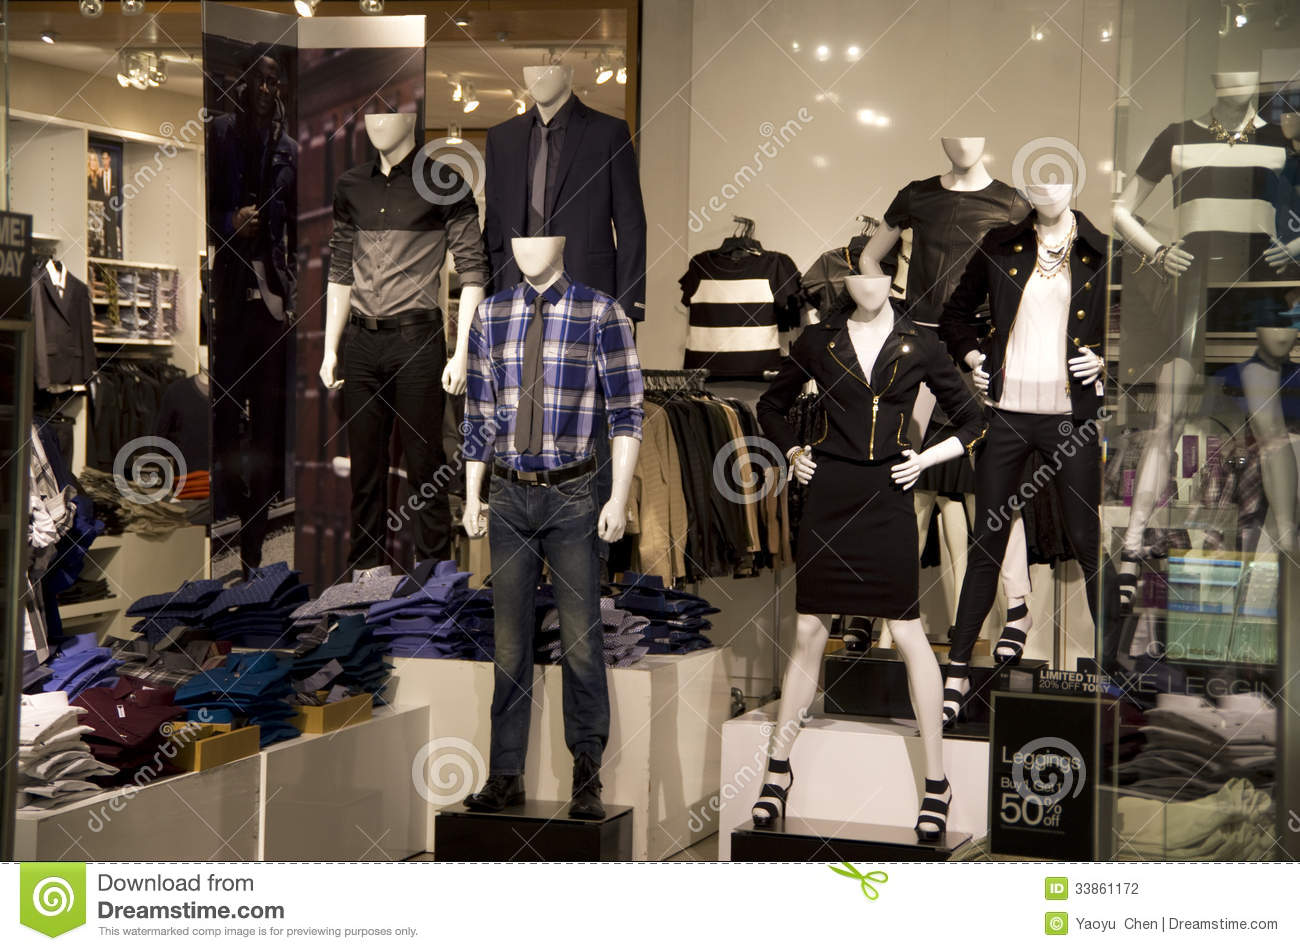 Hip-hop,_toy_and_clothes_shop_at_ulica_Antoniego_Abrahama,_Gdynia.jpg